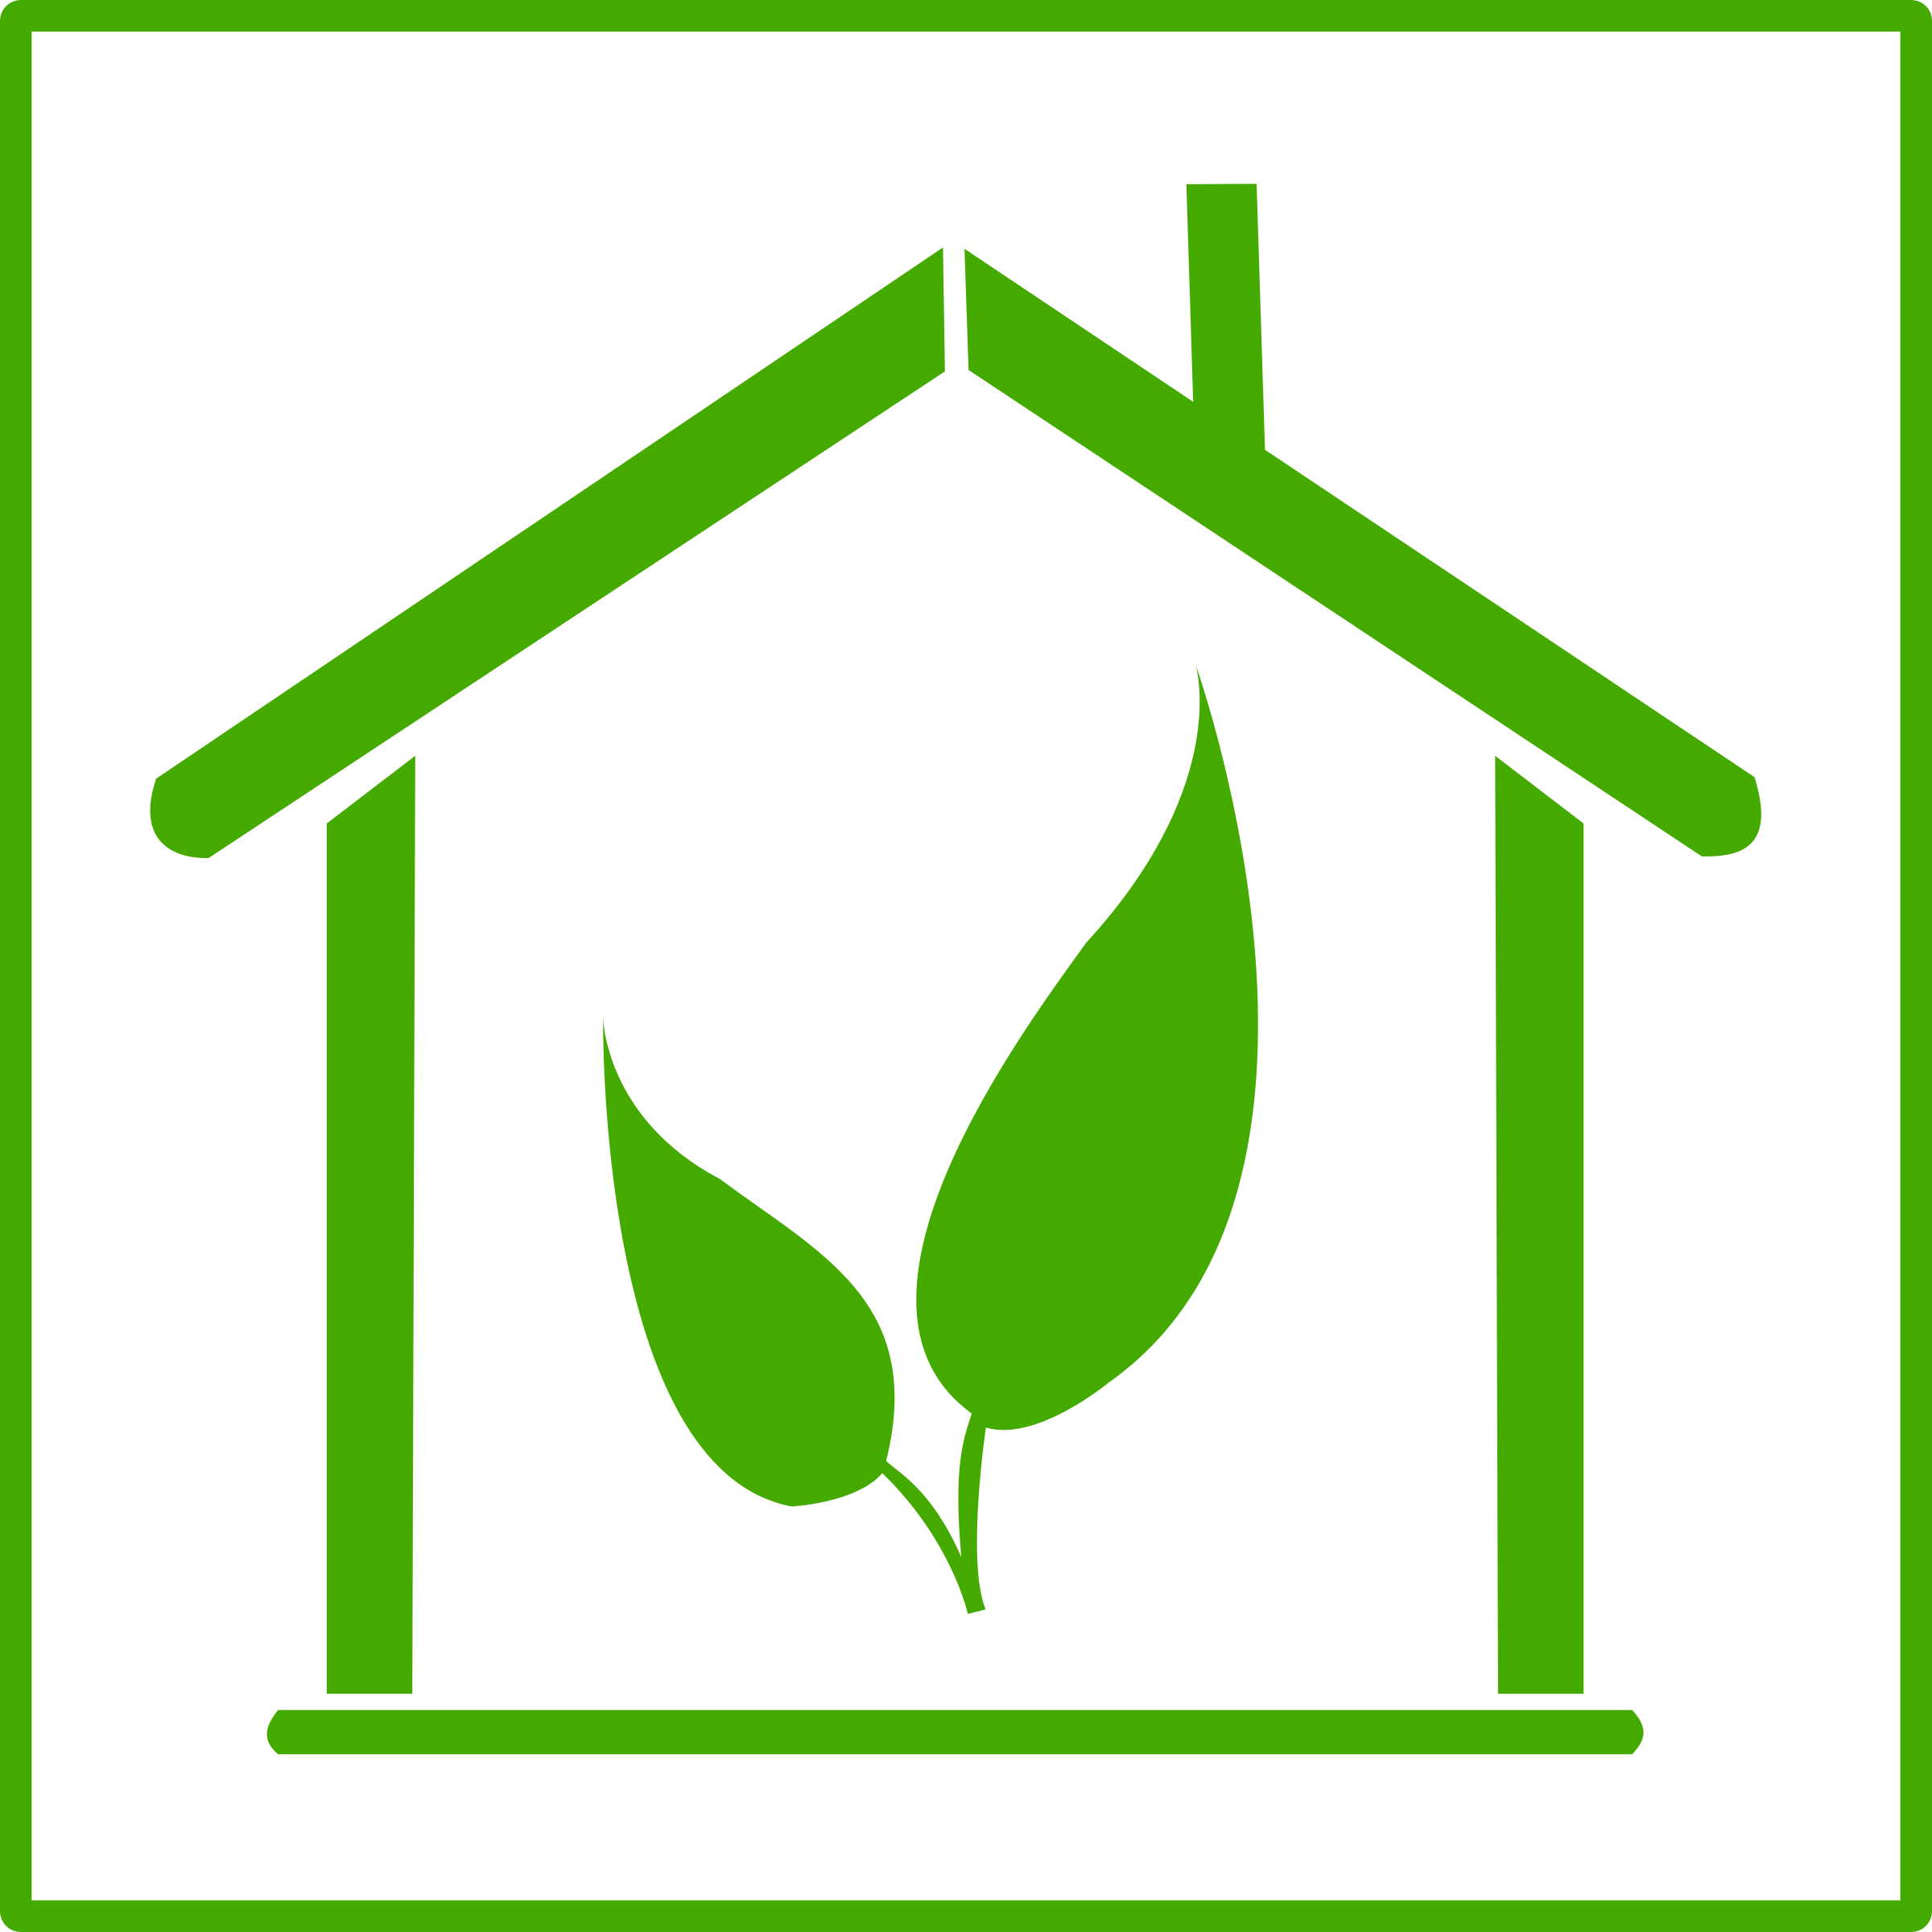 eco green house icon by dominiquechappard